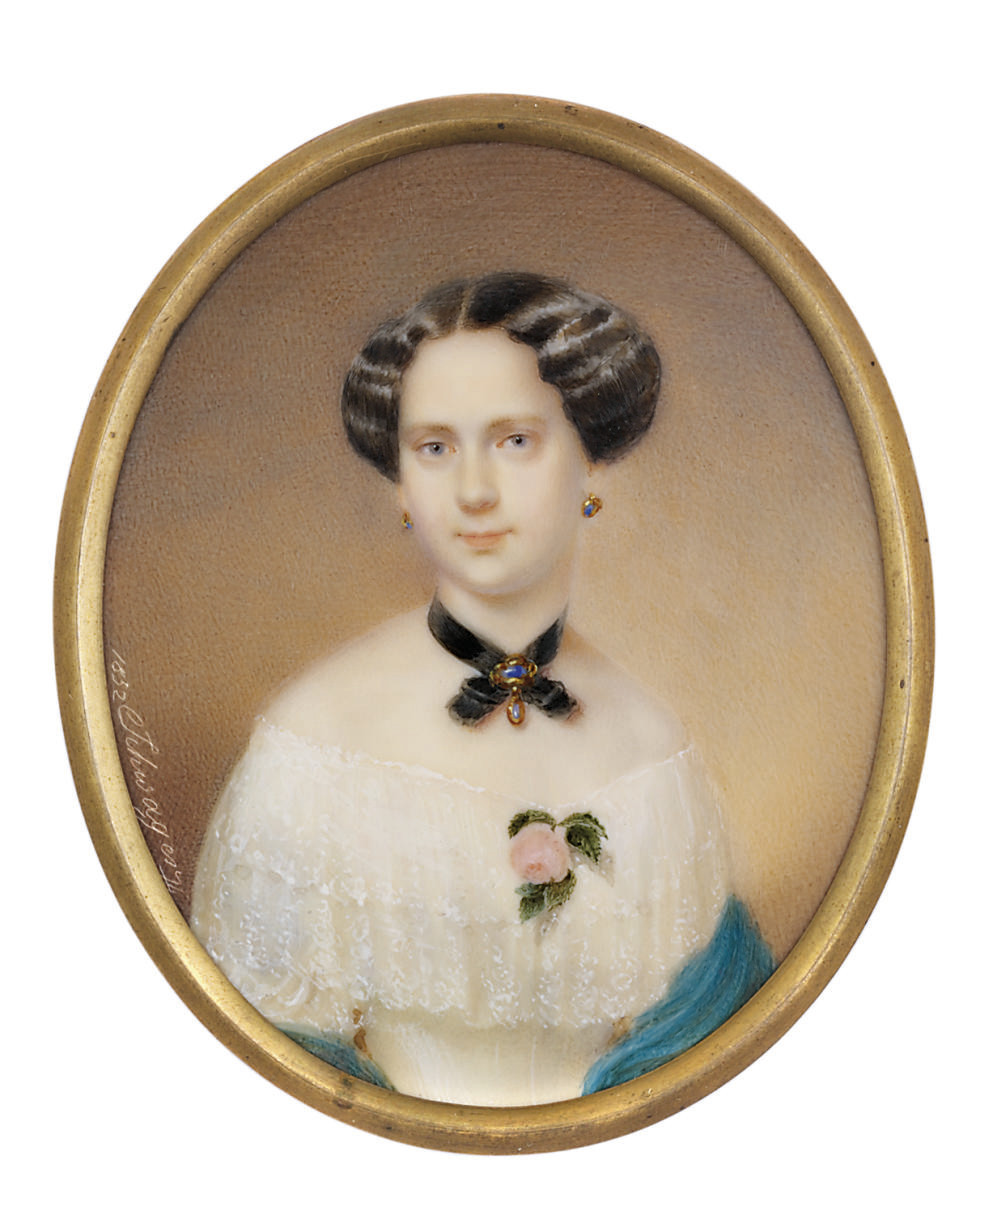 Freifrau von Hanstein, widowed Skotay [?], née Damböck, in off-the-shoulder white dress with tiered lace collar, pink rose at corsage, turquoise shawl, black choker set with brooch, gem-set earrings, dark upswept hair